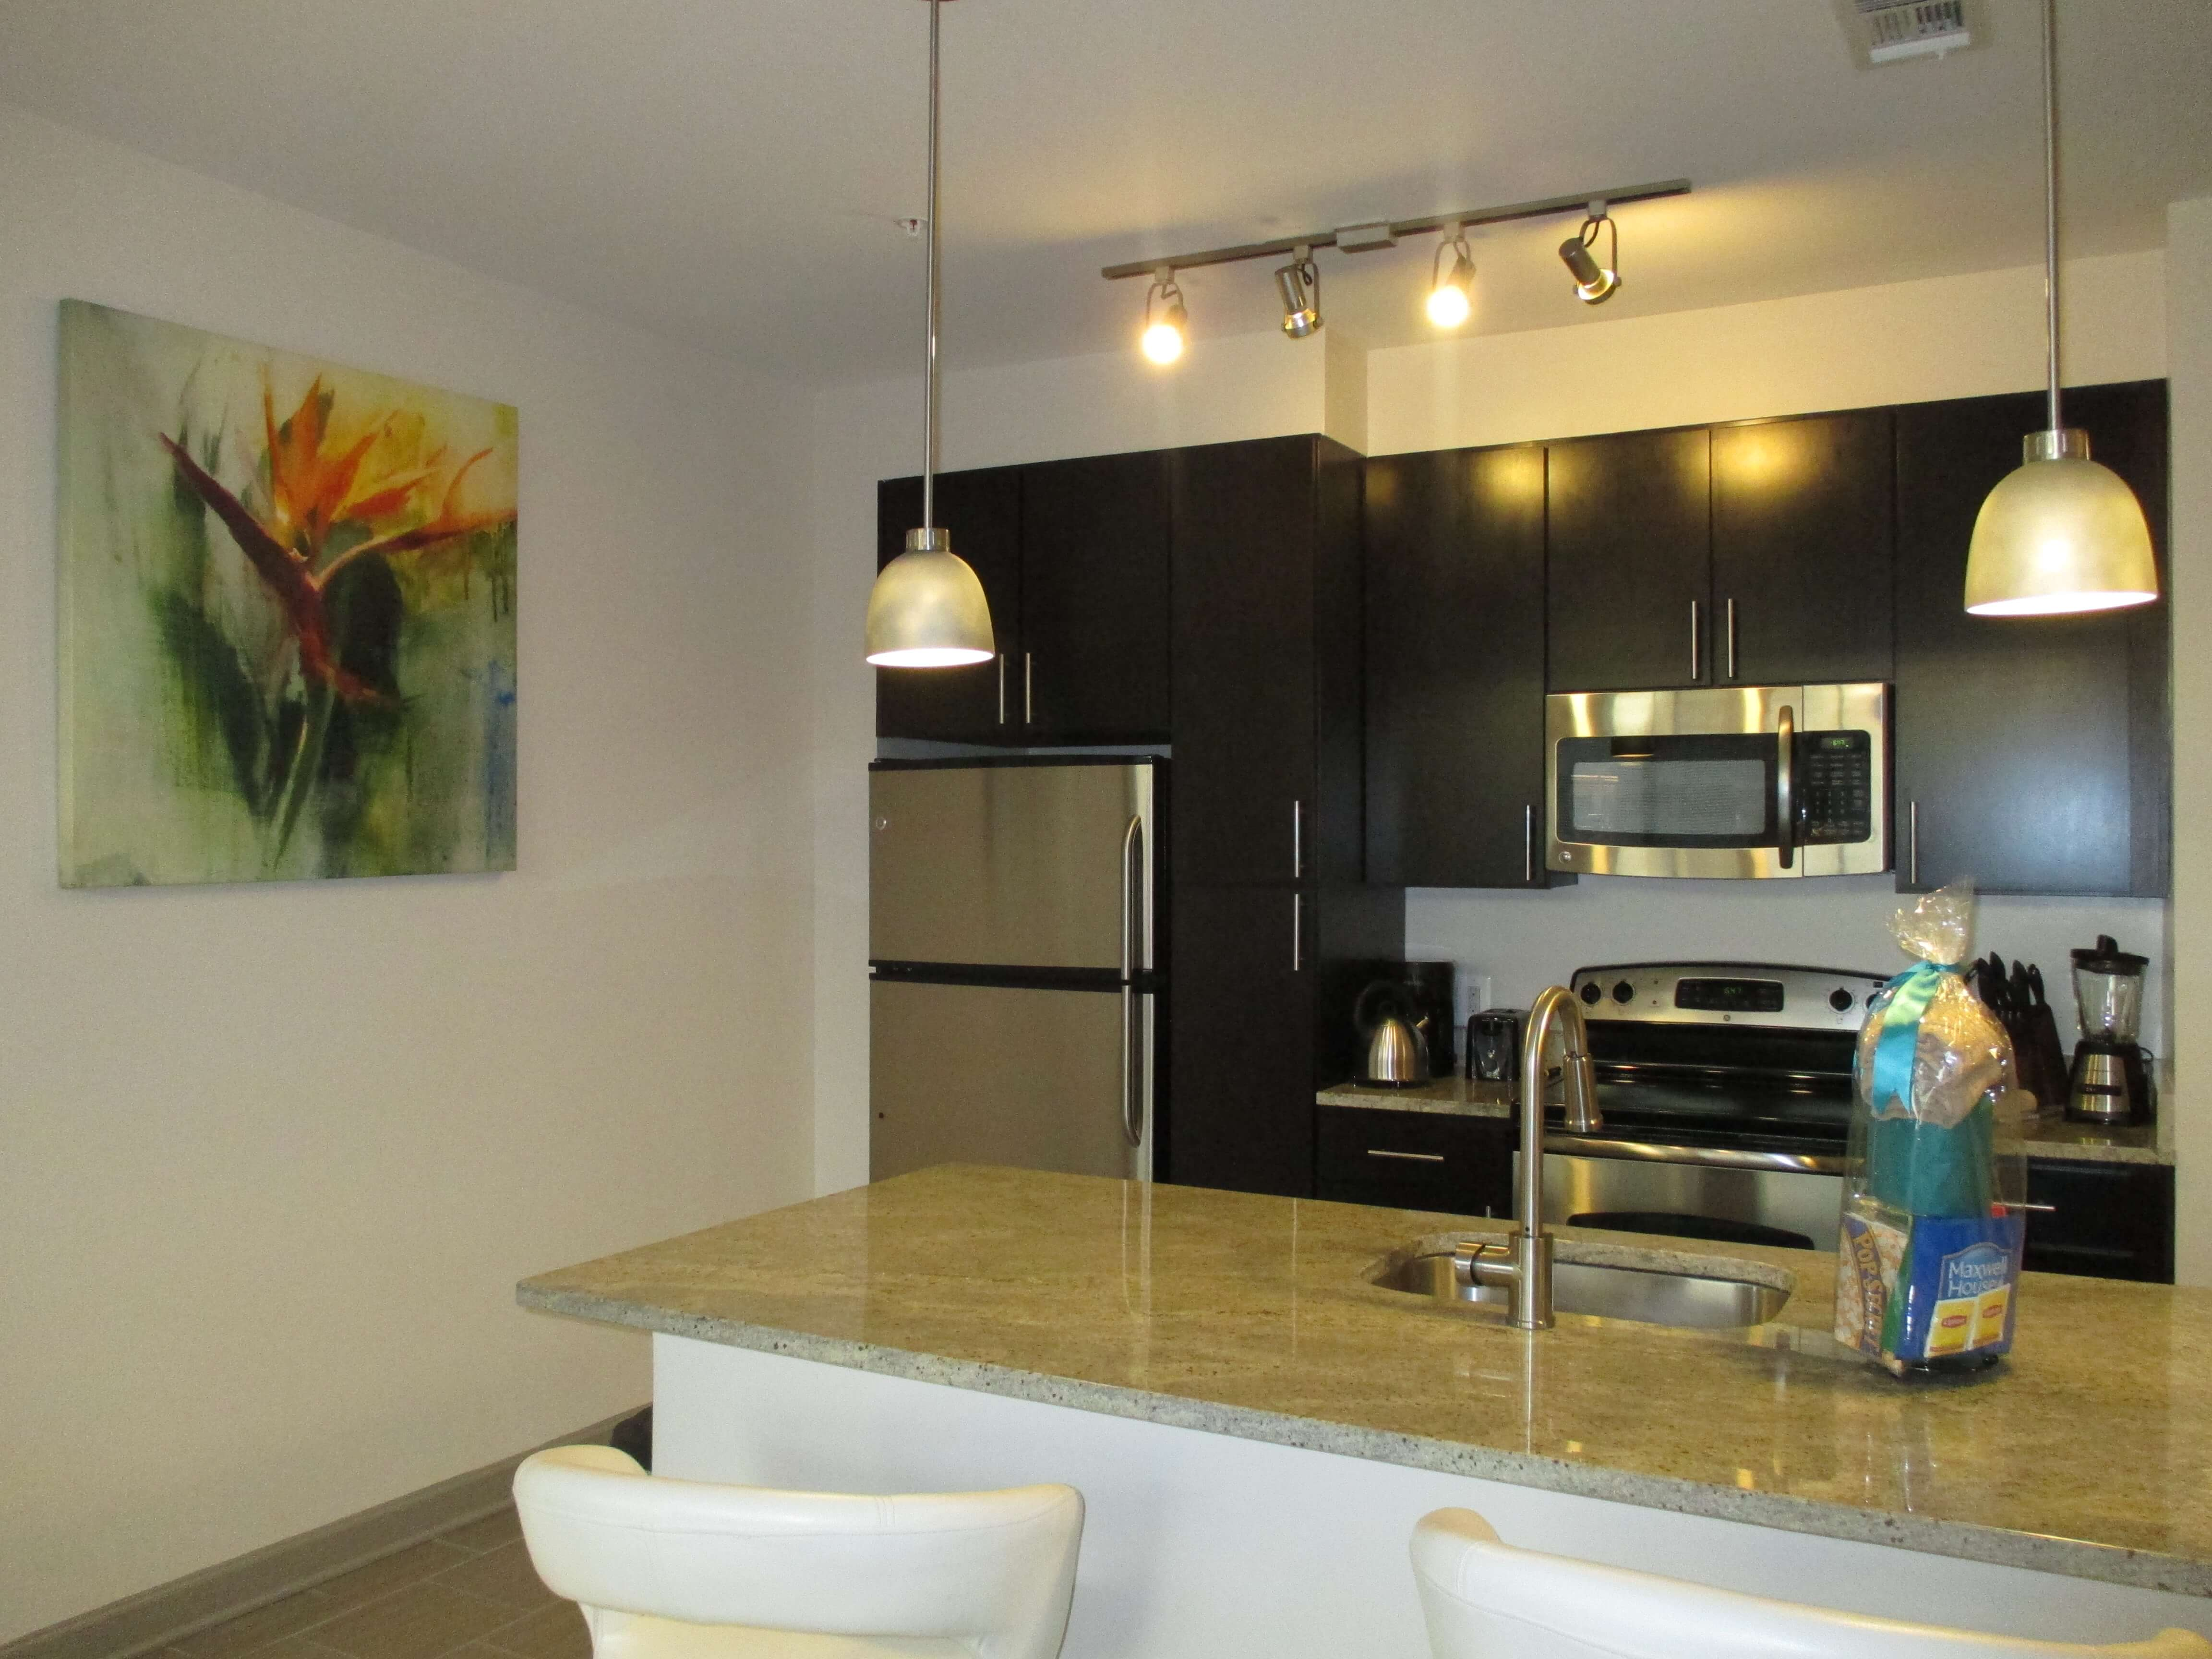 2 Bedroom Apartments In Baltimore City 28 Images 2435